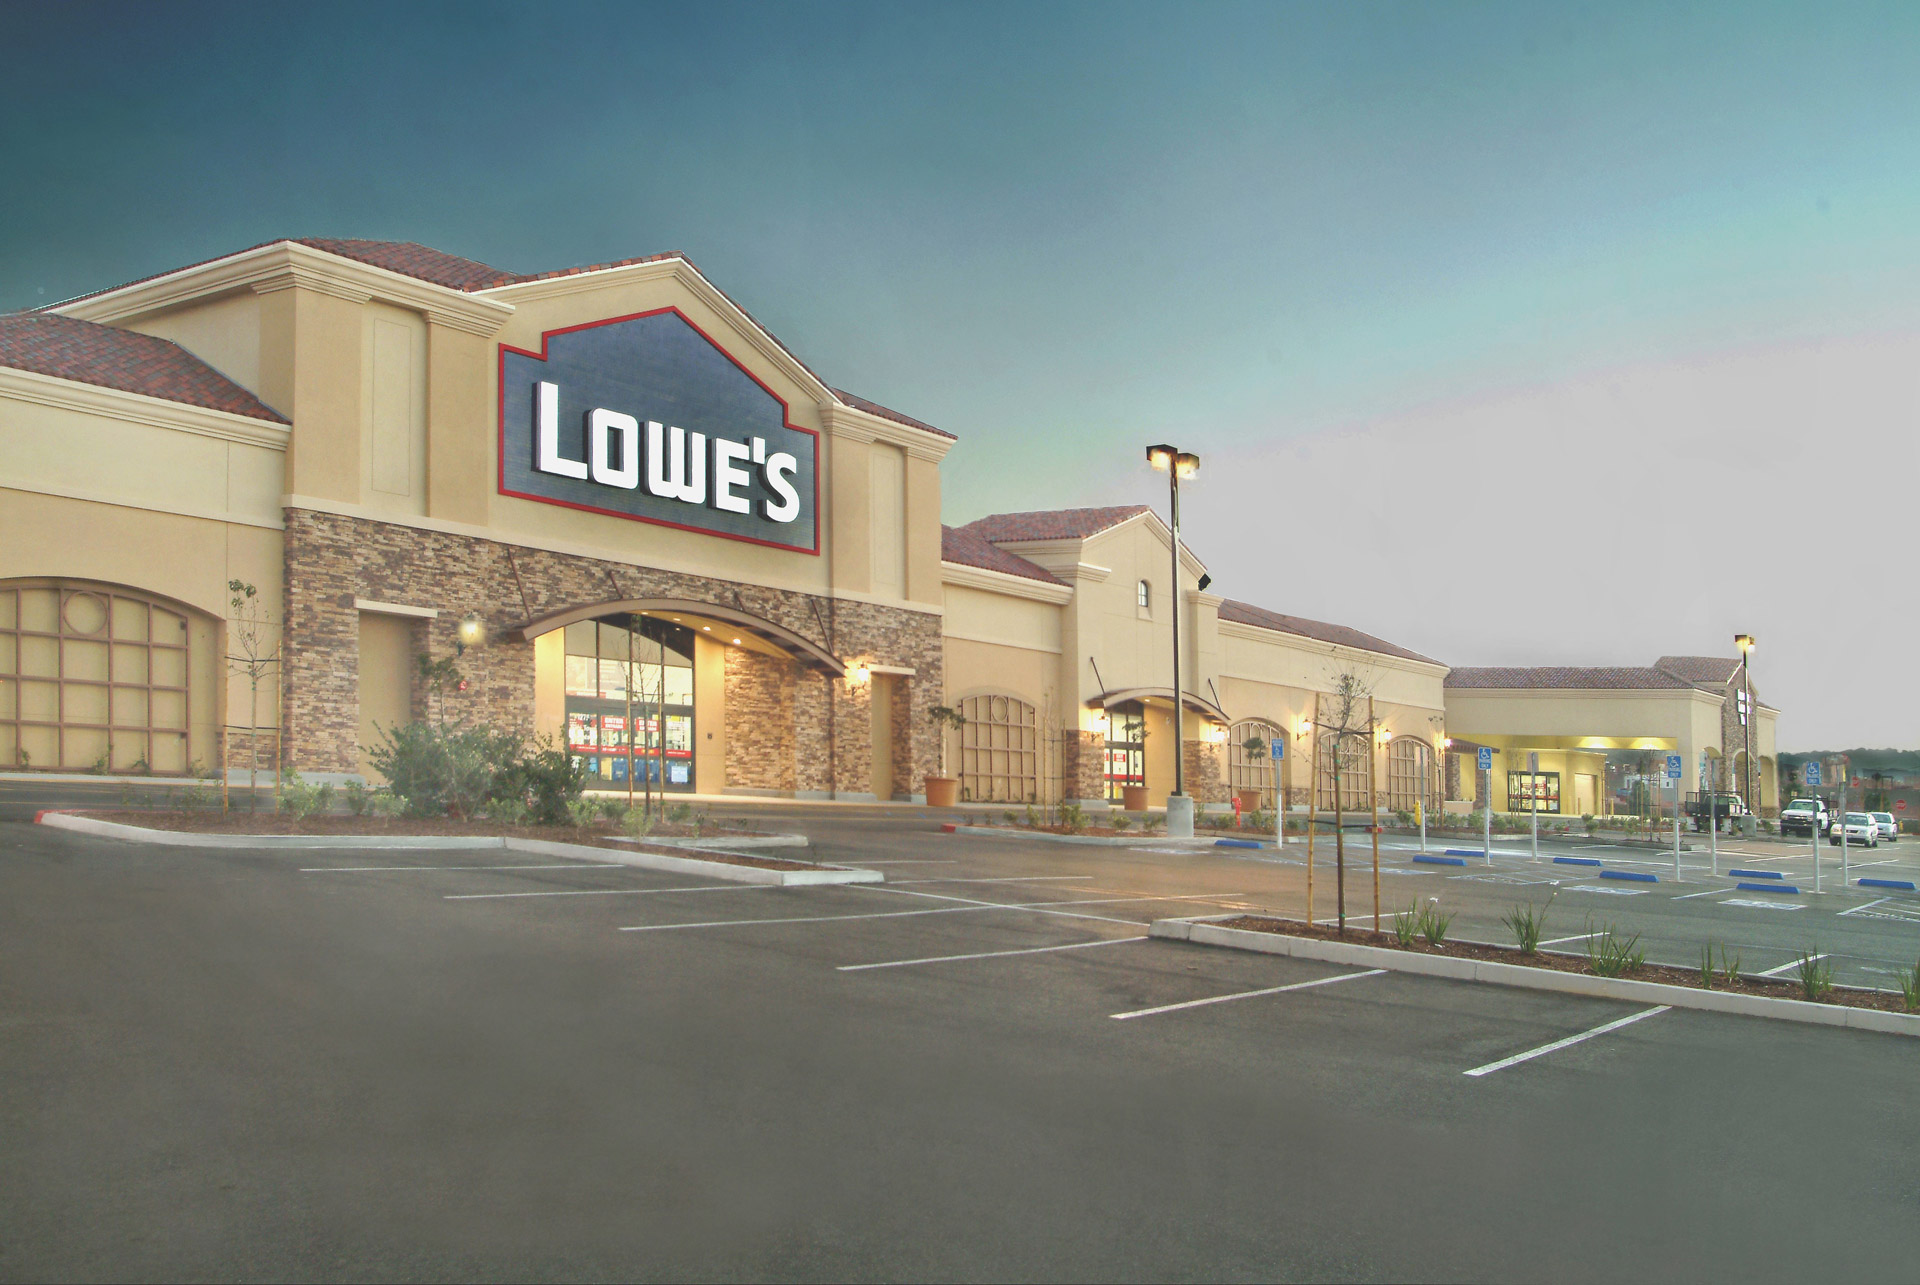 Lowes-1